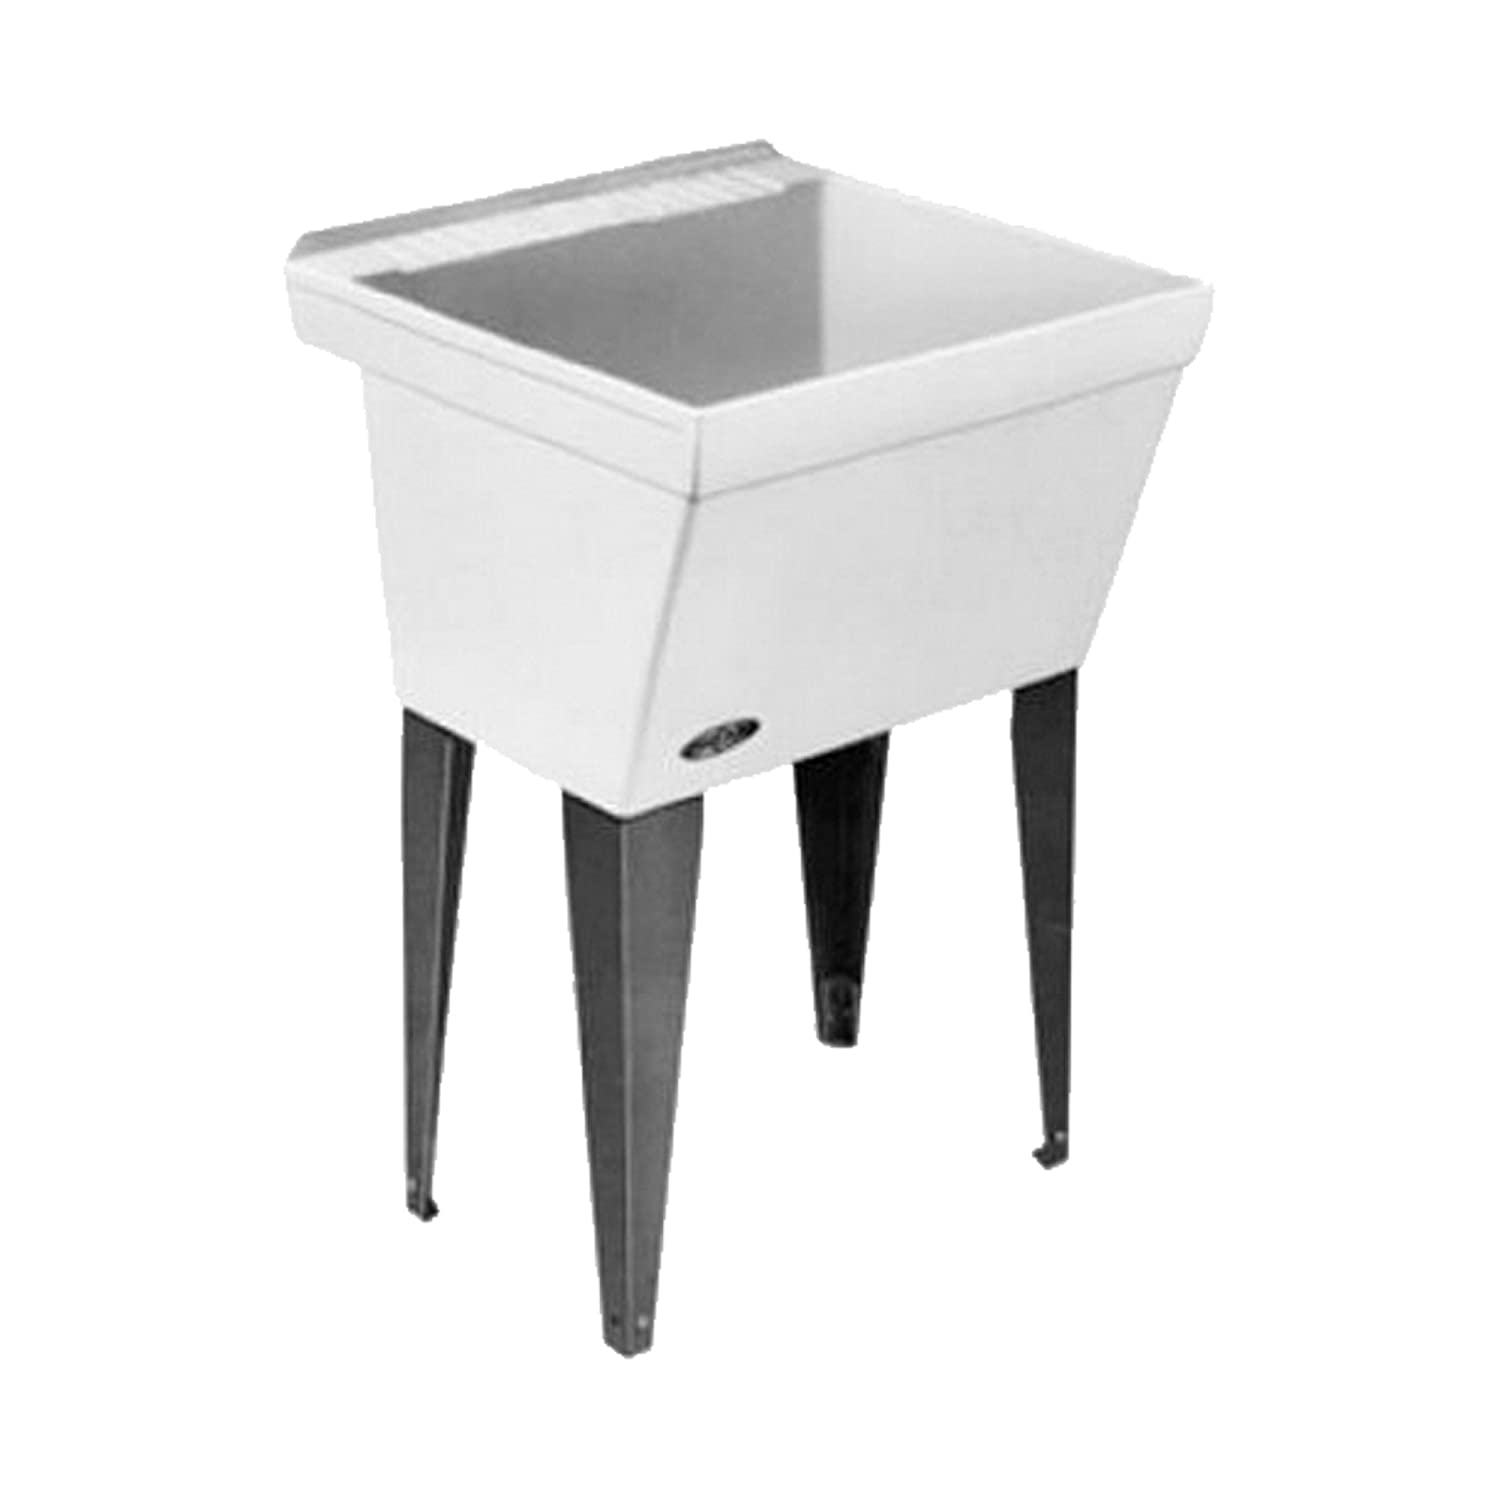 Plastic Utility Sink With Drainboard : Plastic Utility Sink with Legs